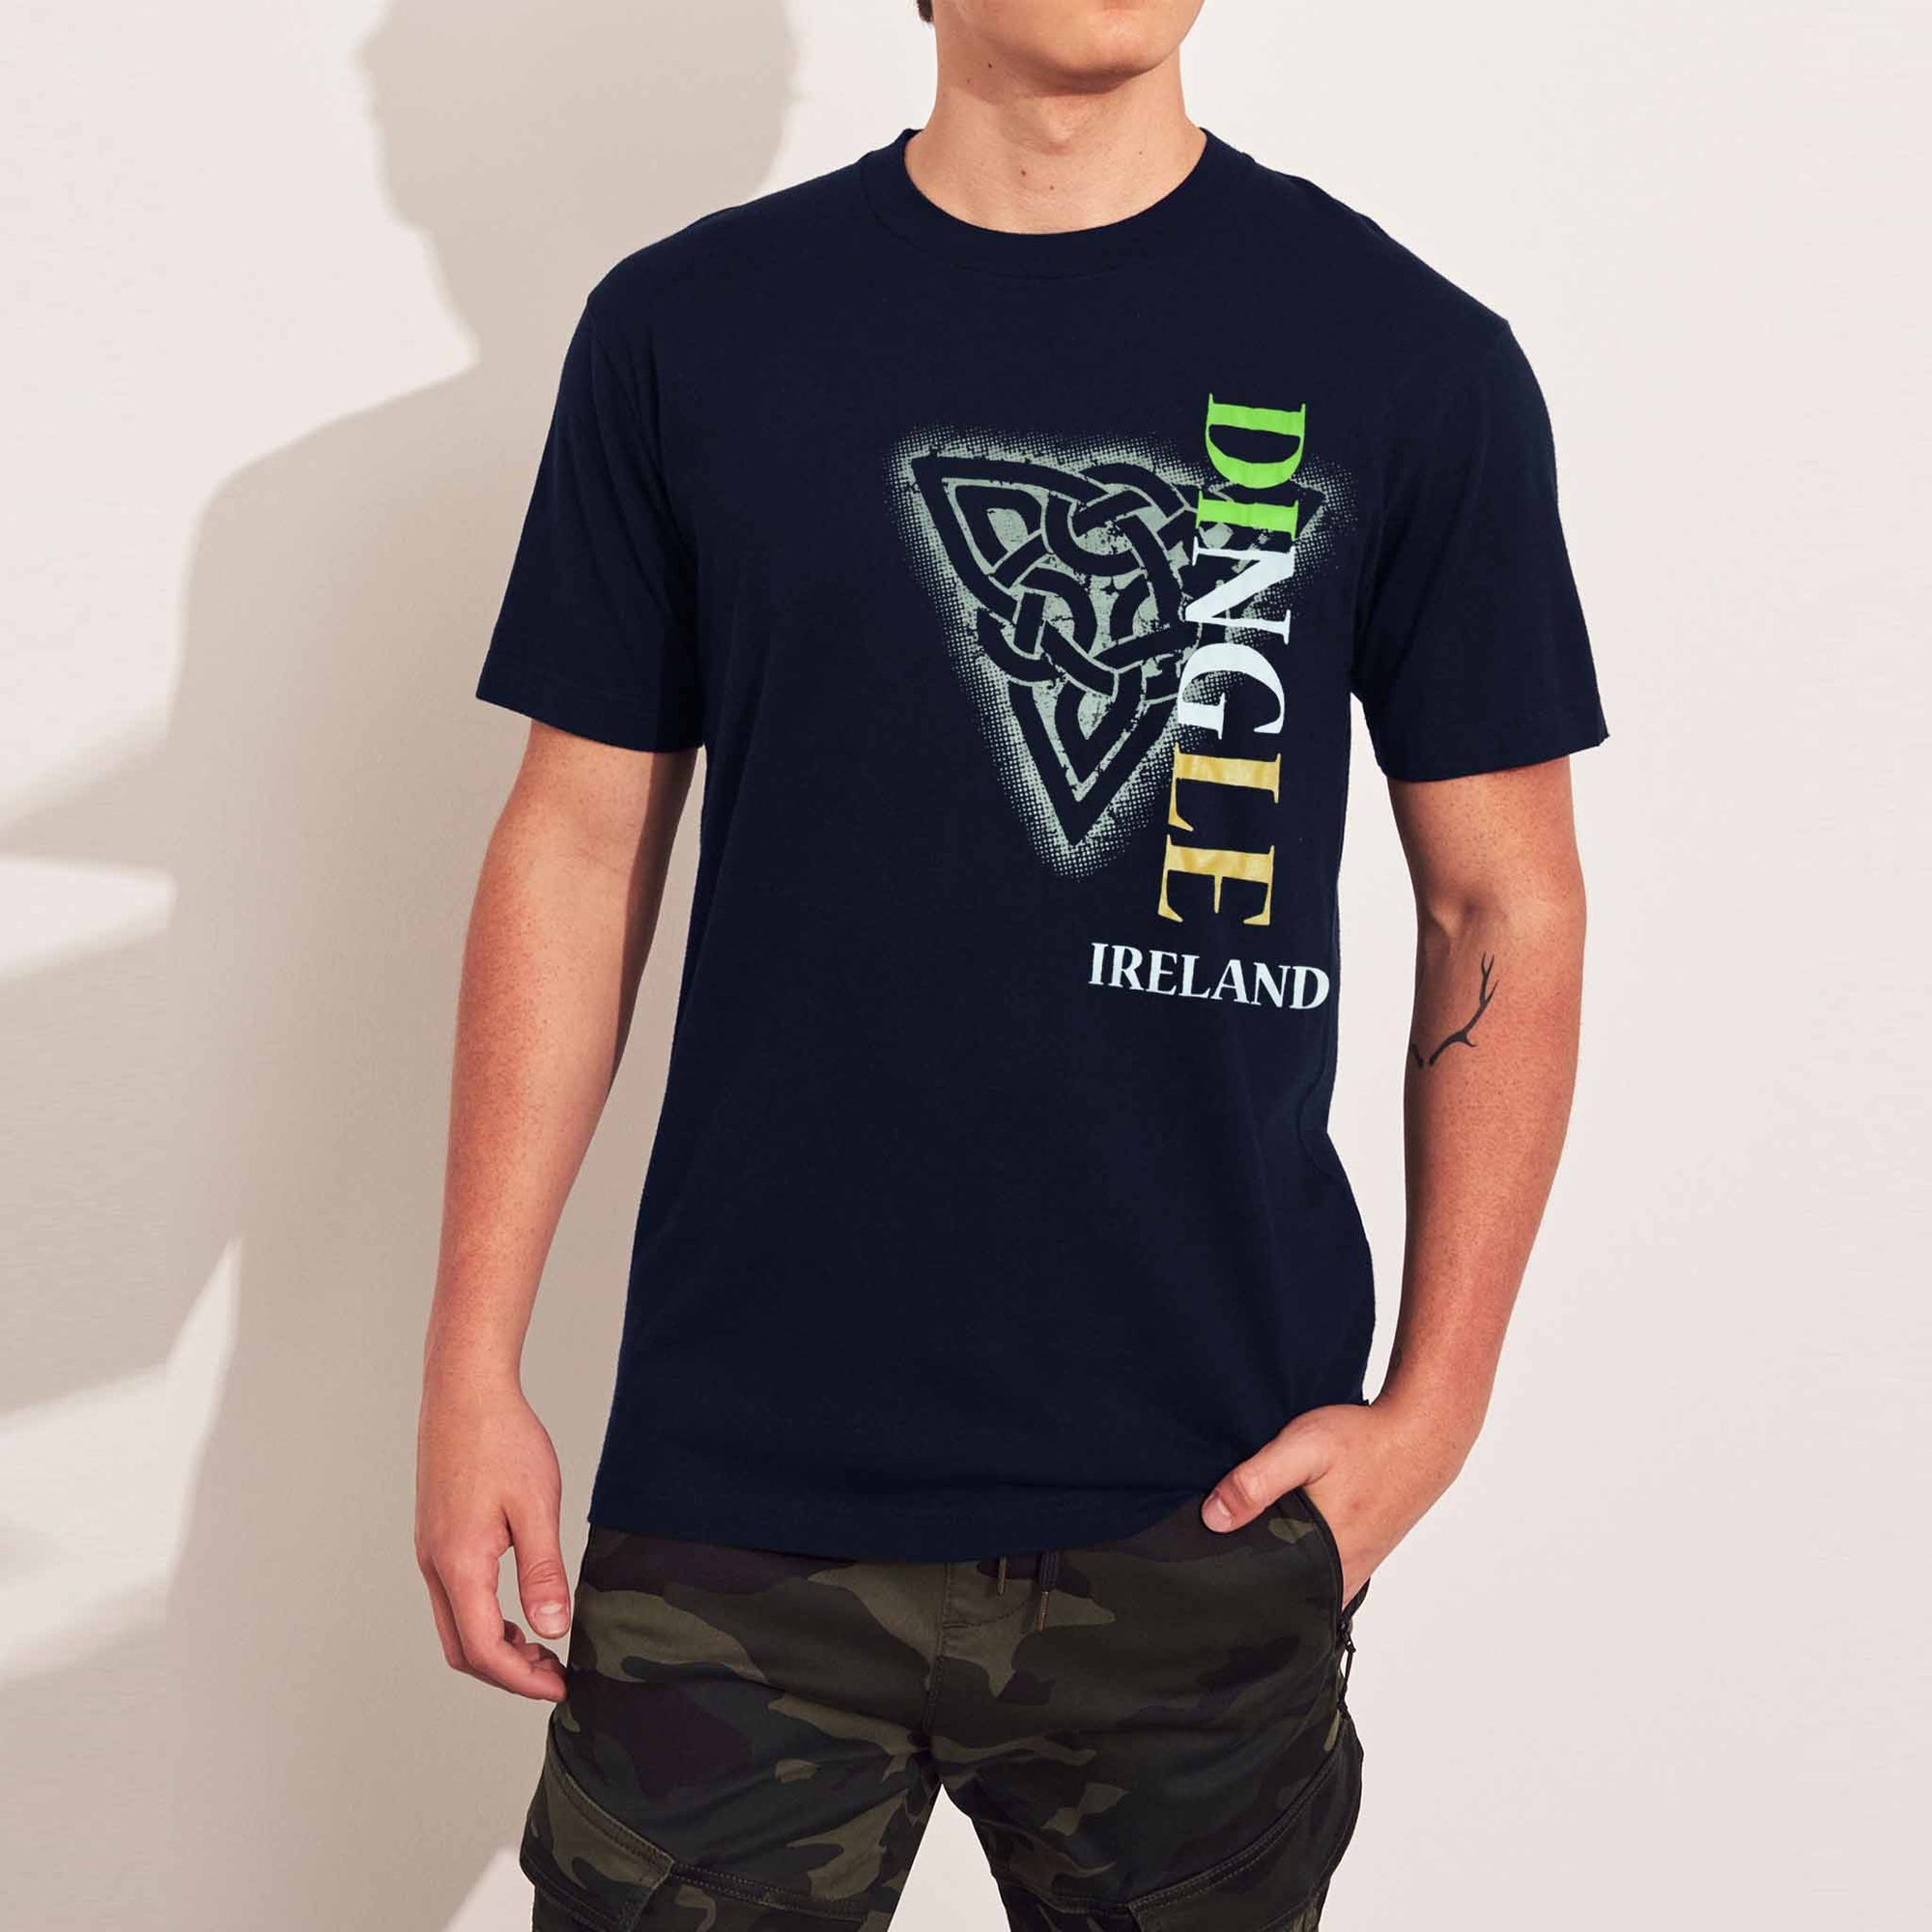 Dolmen Single Jersey Tee Shirt For Men-Dark Navy With Print-SP605